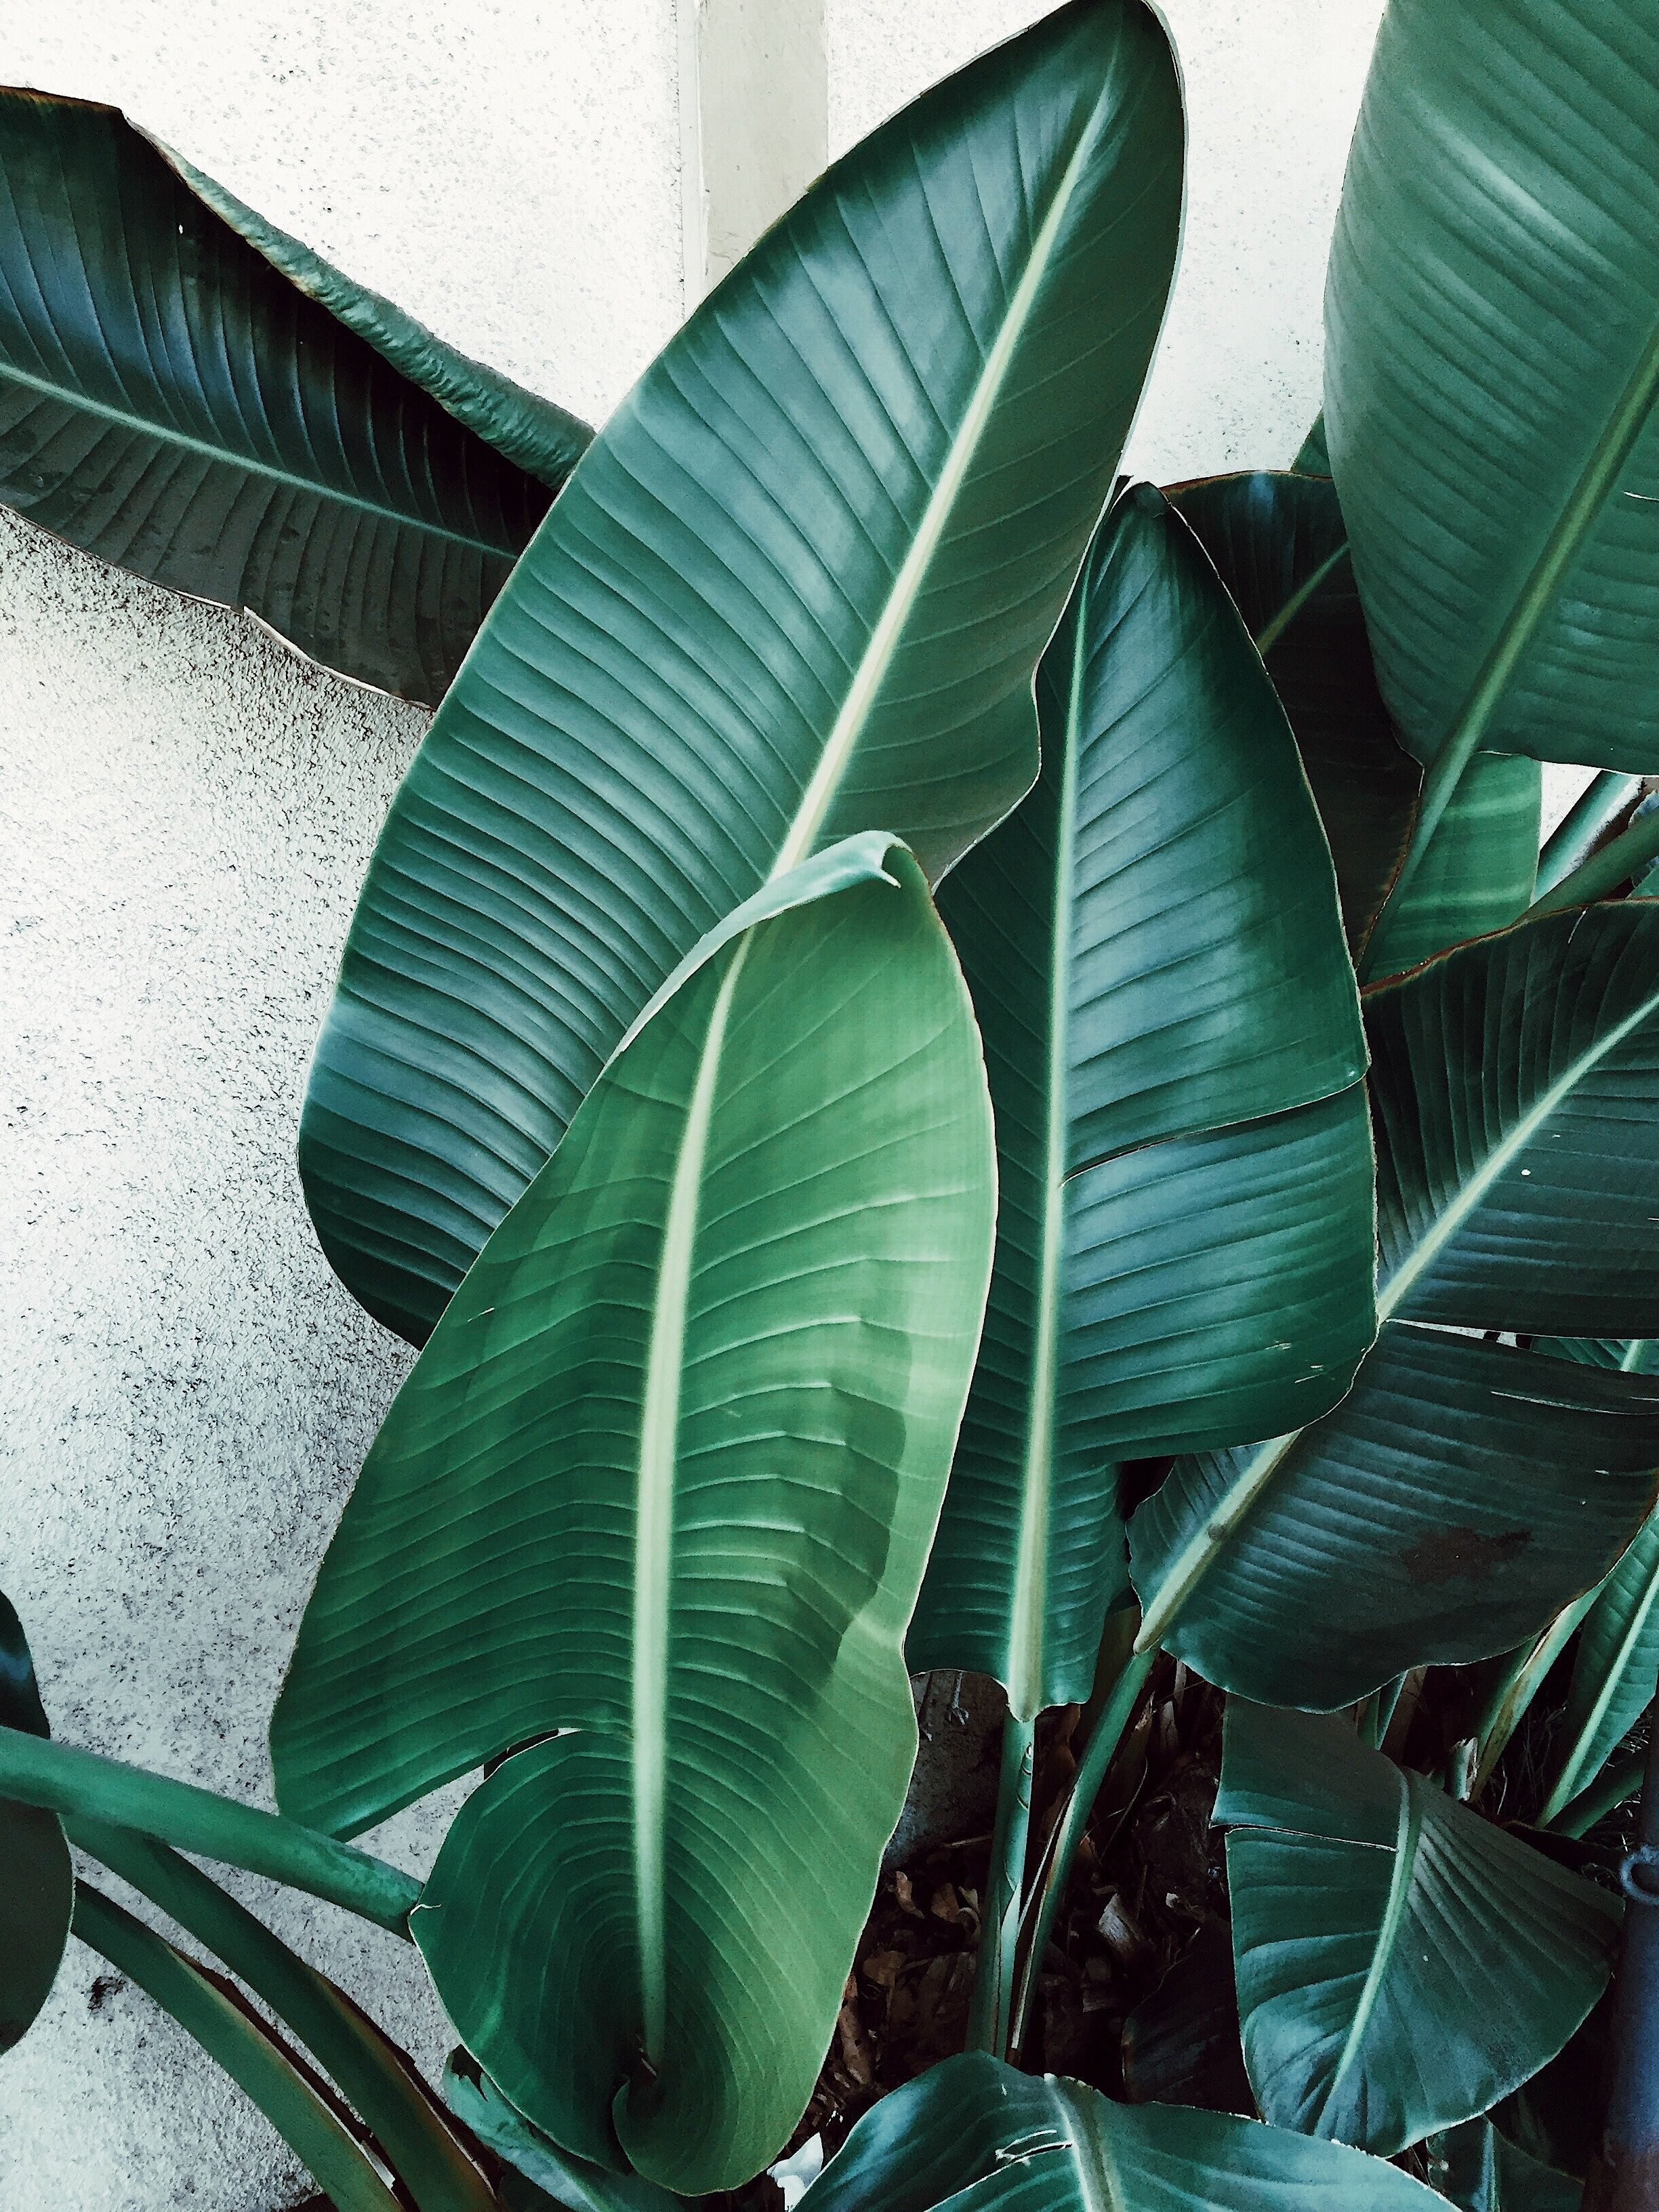 Banana Leafs Tropical And So California Leaf Photography Tropical Leaves Plant Aesthetic